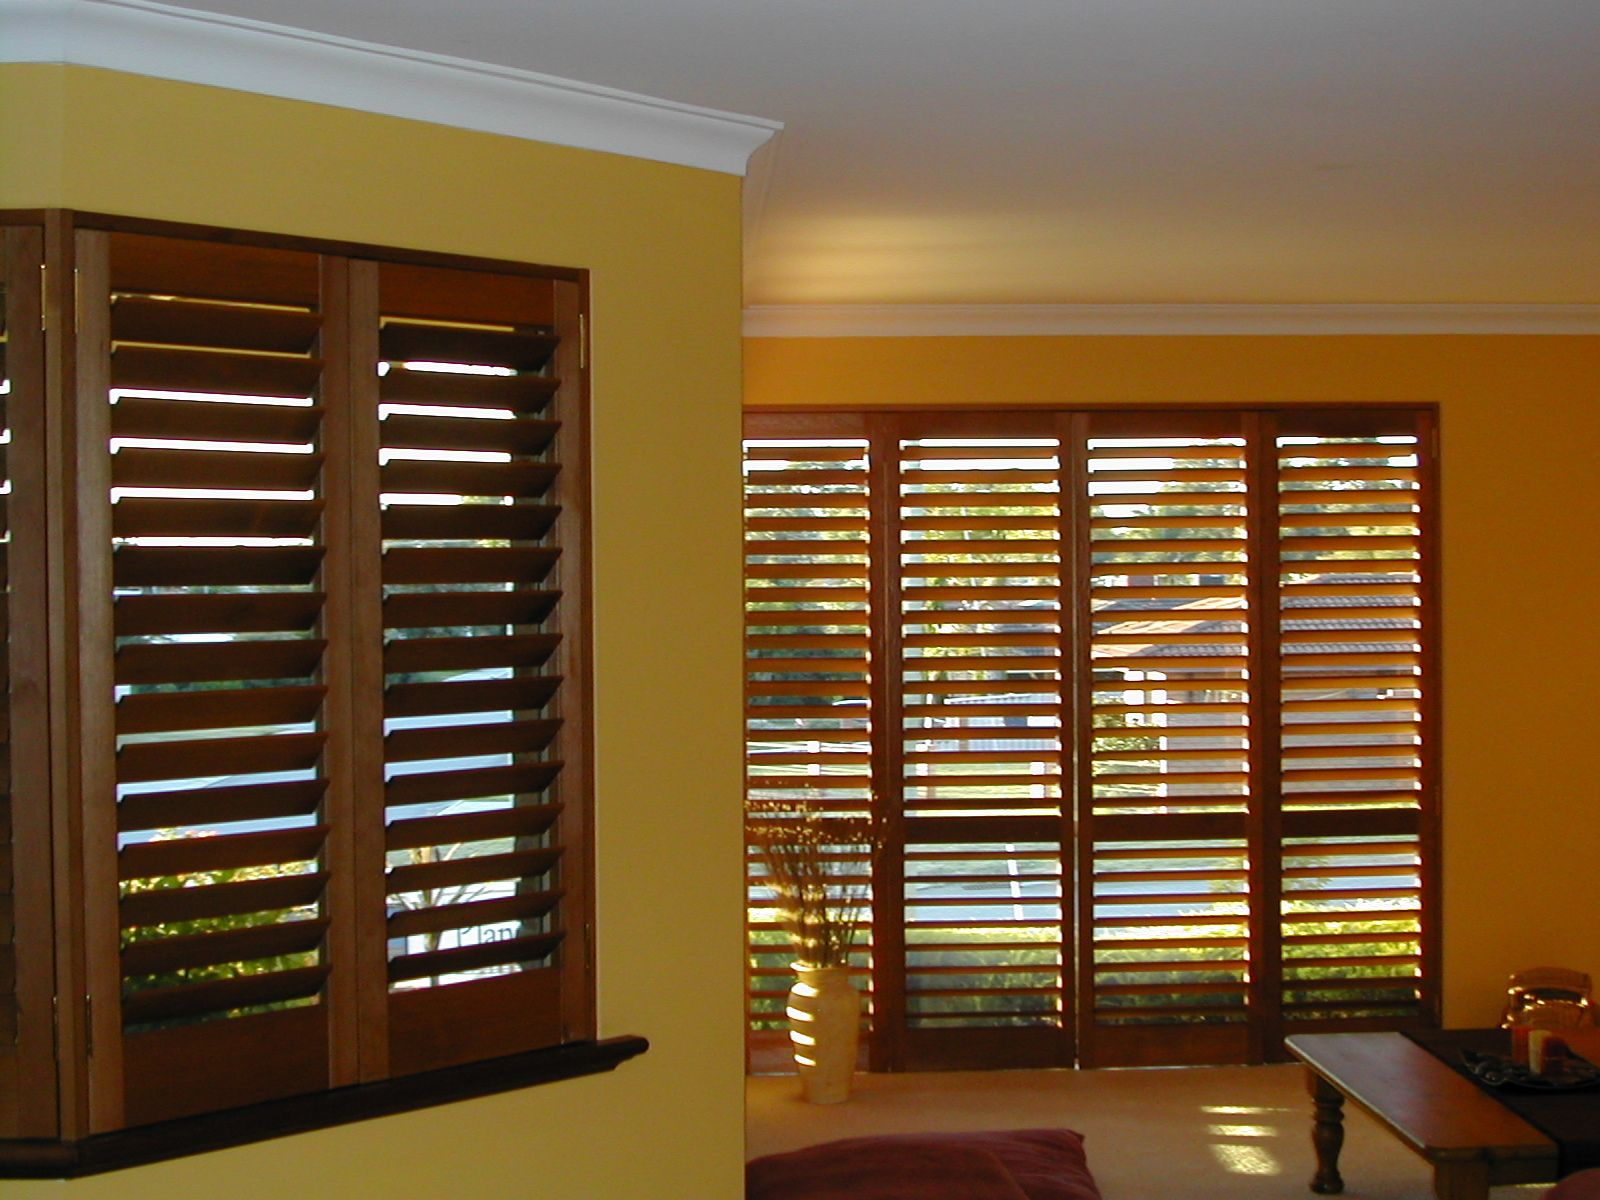 oiledshutters Window treatments, Shutters, Home decor